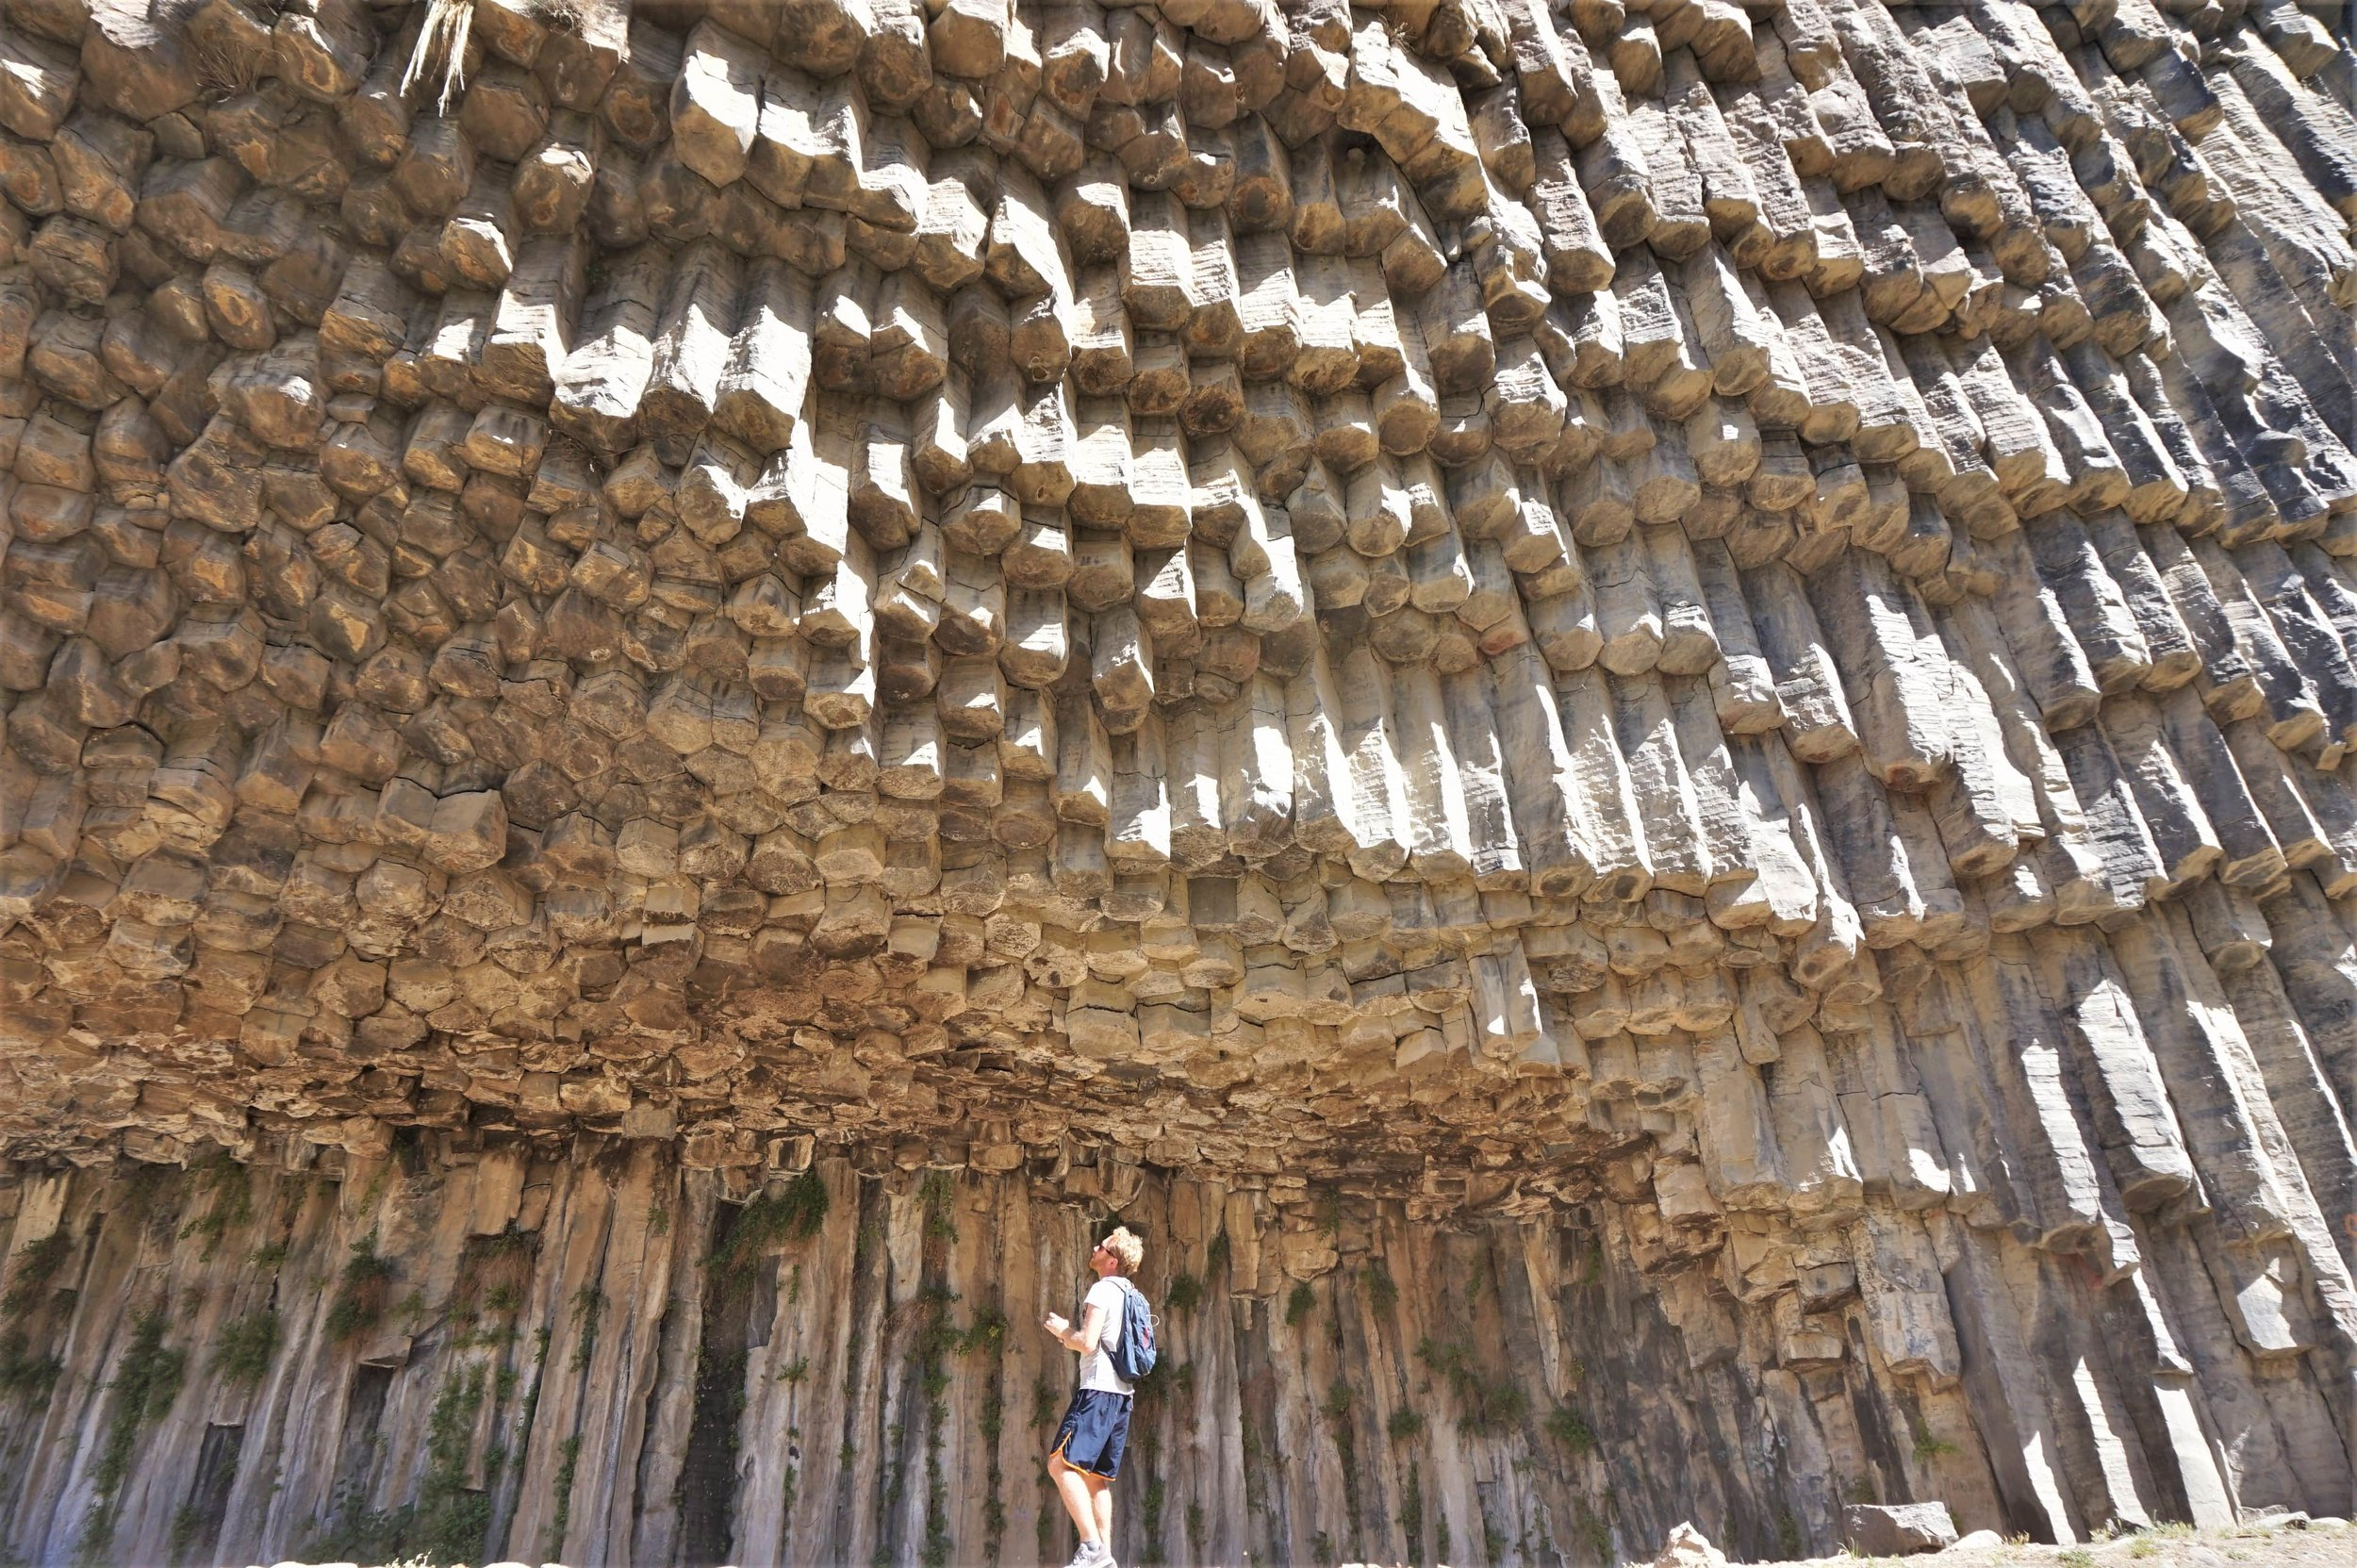 Don't miss the Symphony of Stones near Garni on your visit to Armenia.